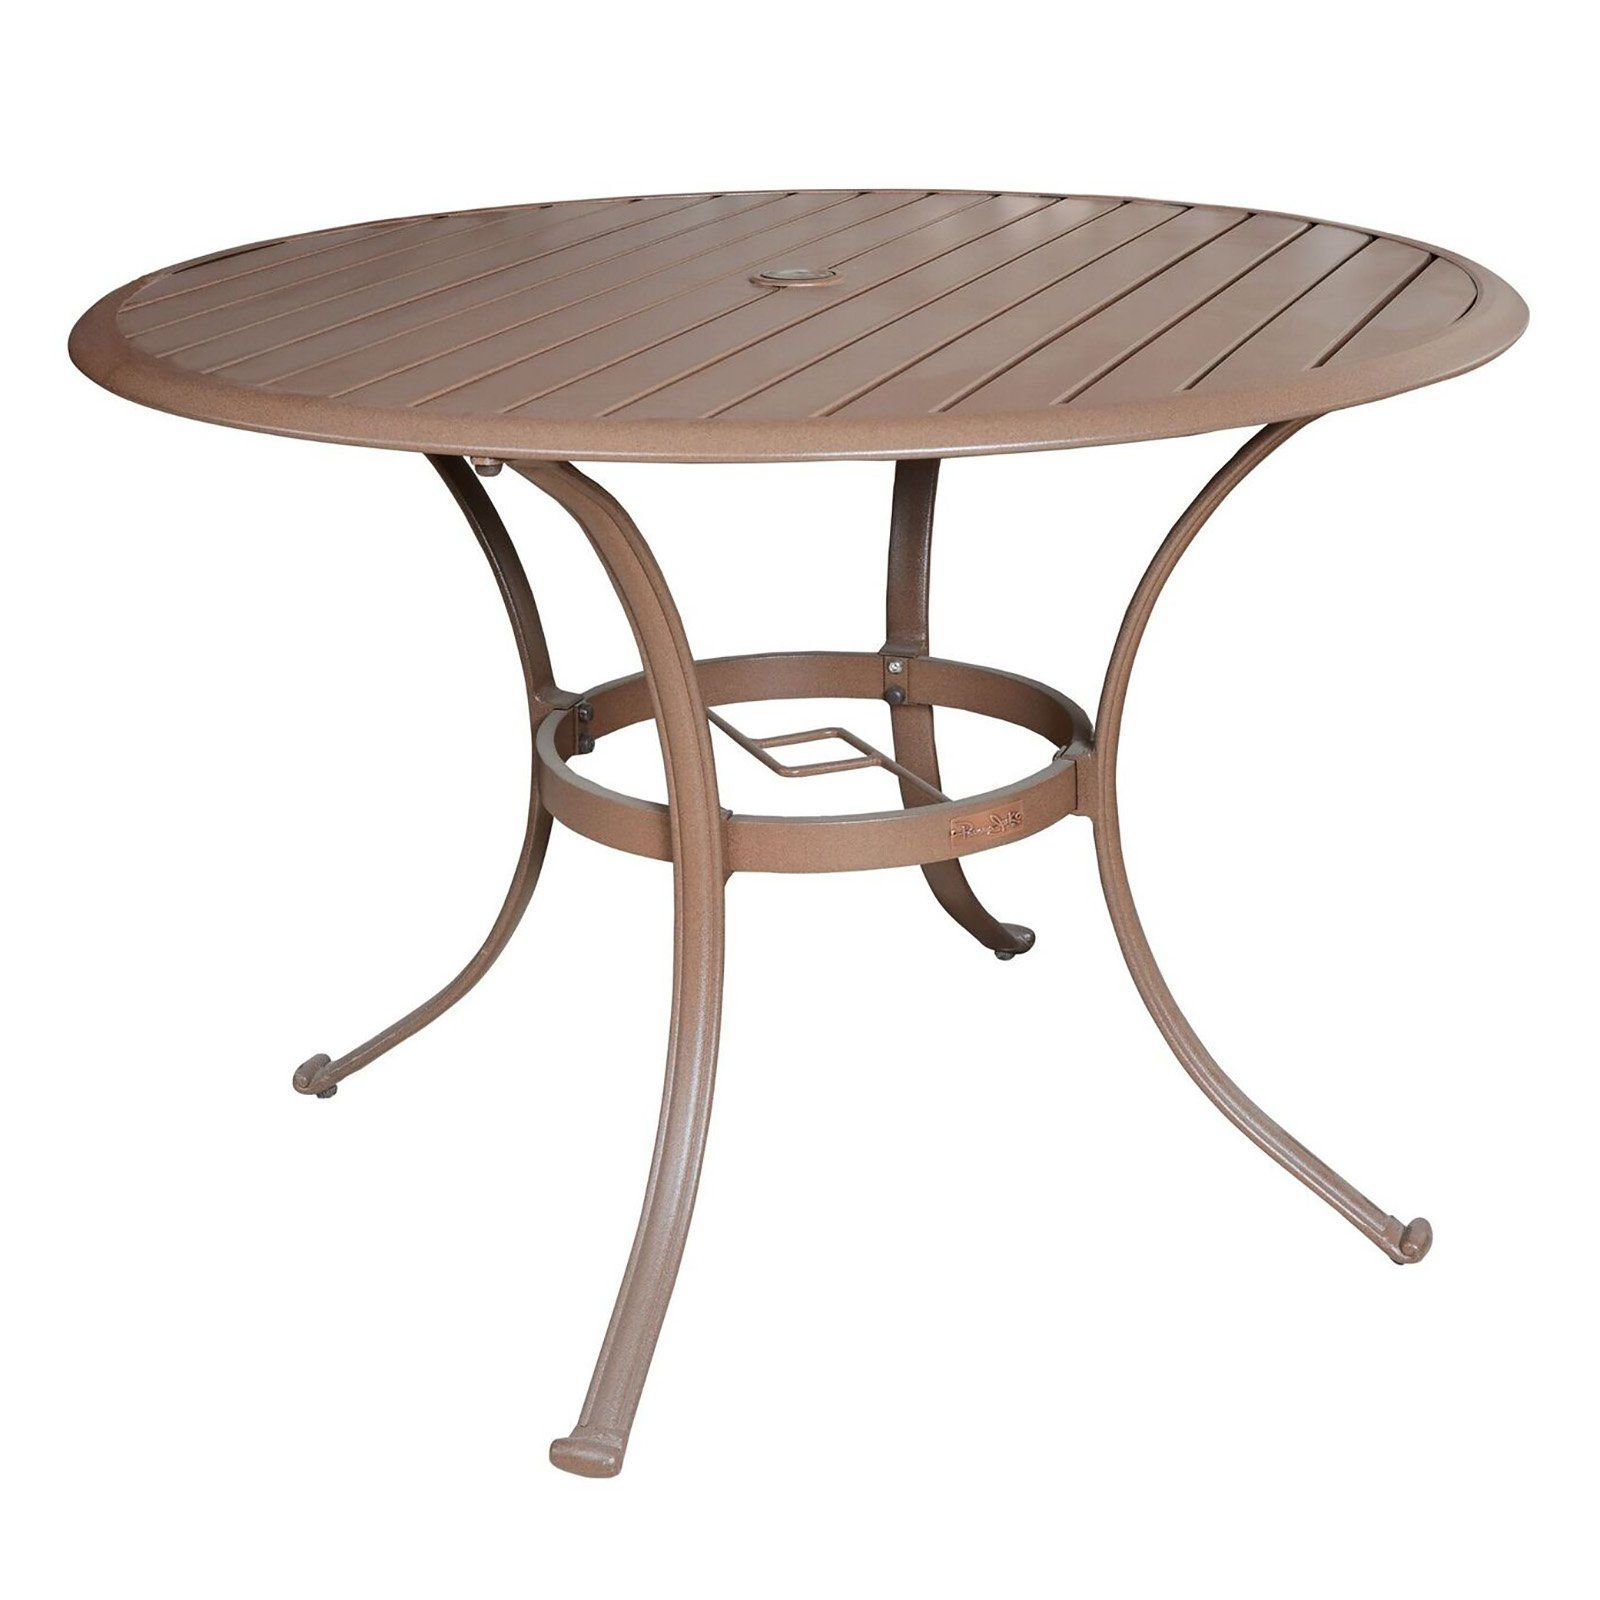 Outdoor Panama Jack Island Breeze 48 In Round Slatted Aluminum Patio Dining Table With Umbrella Hole Pjo 1001 Esp 48 Round Outdoor Dining Table Round Dining Table Patio Dining